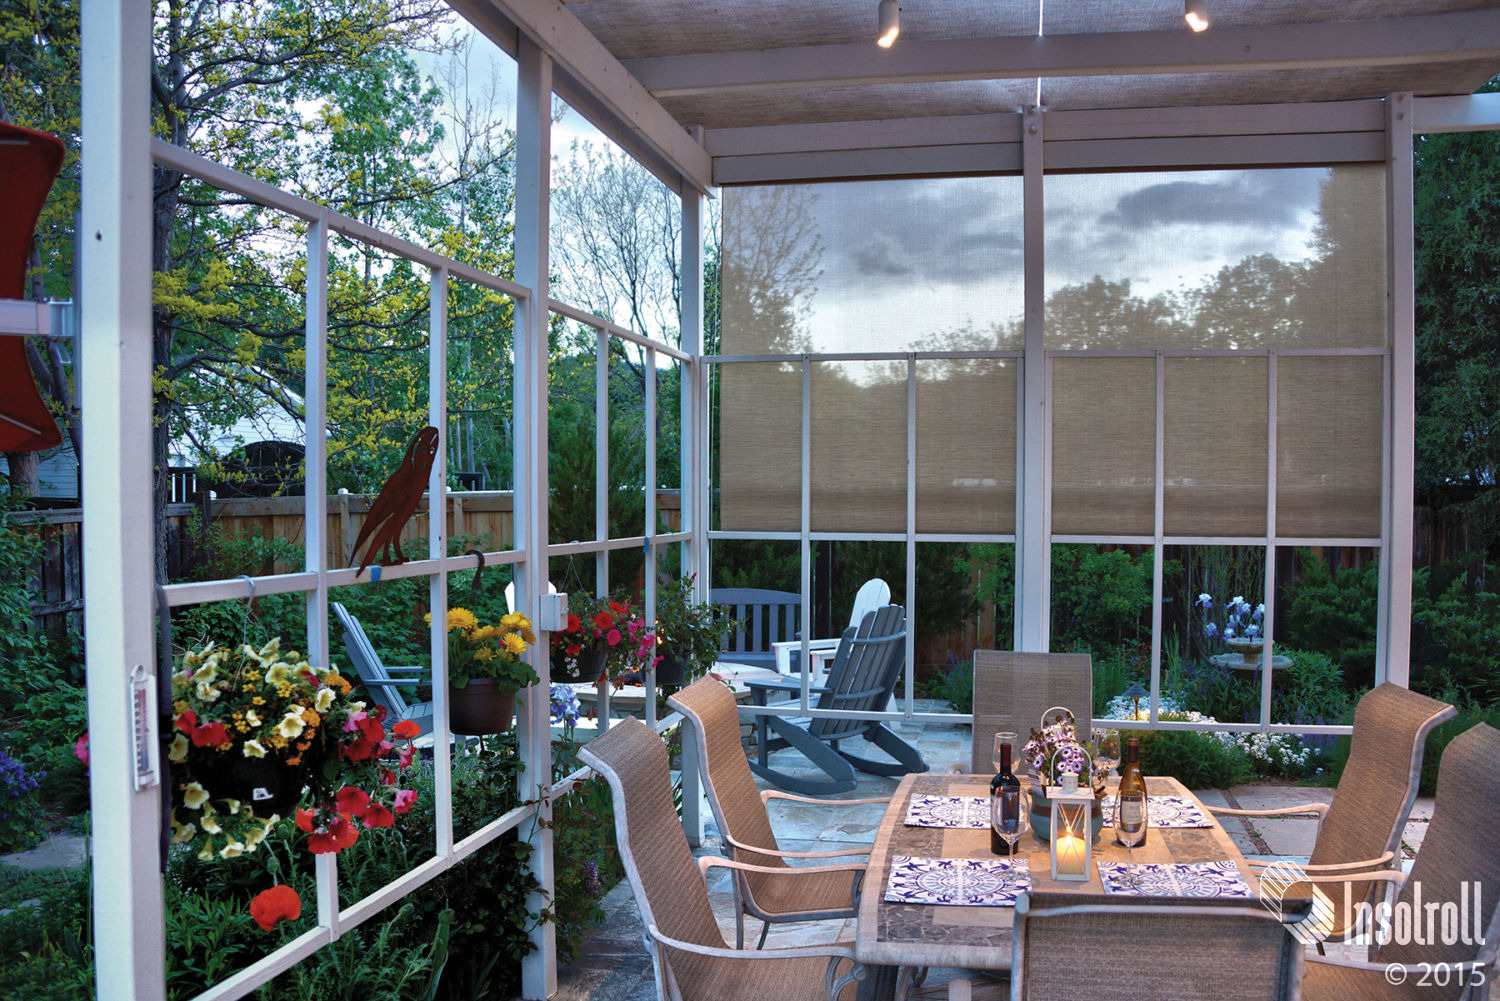 Insolroll patio shades powered by Lutron